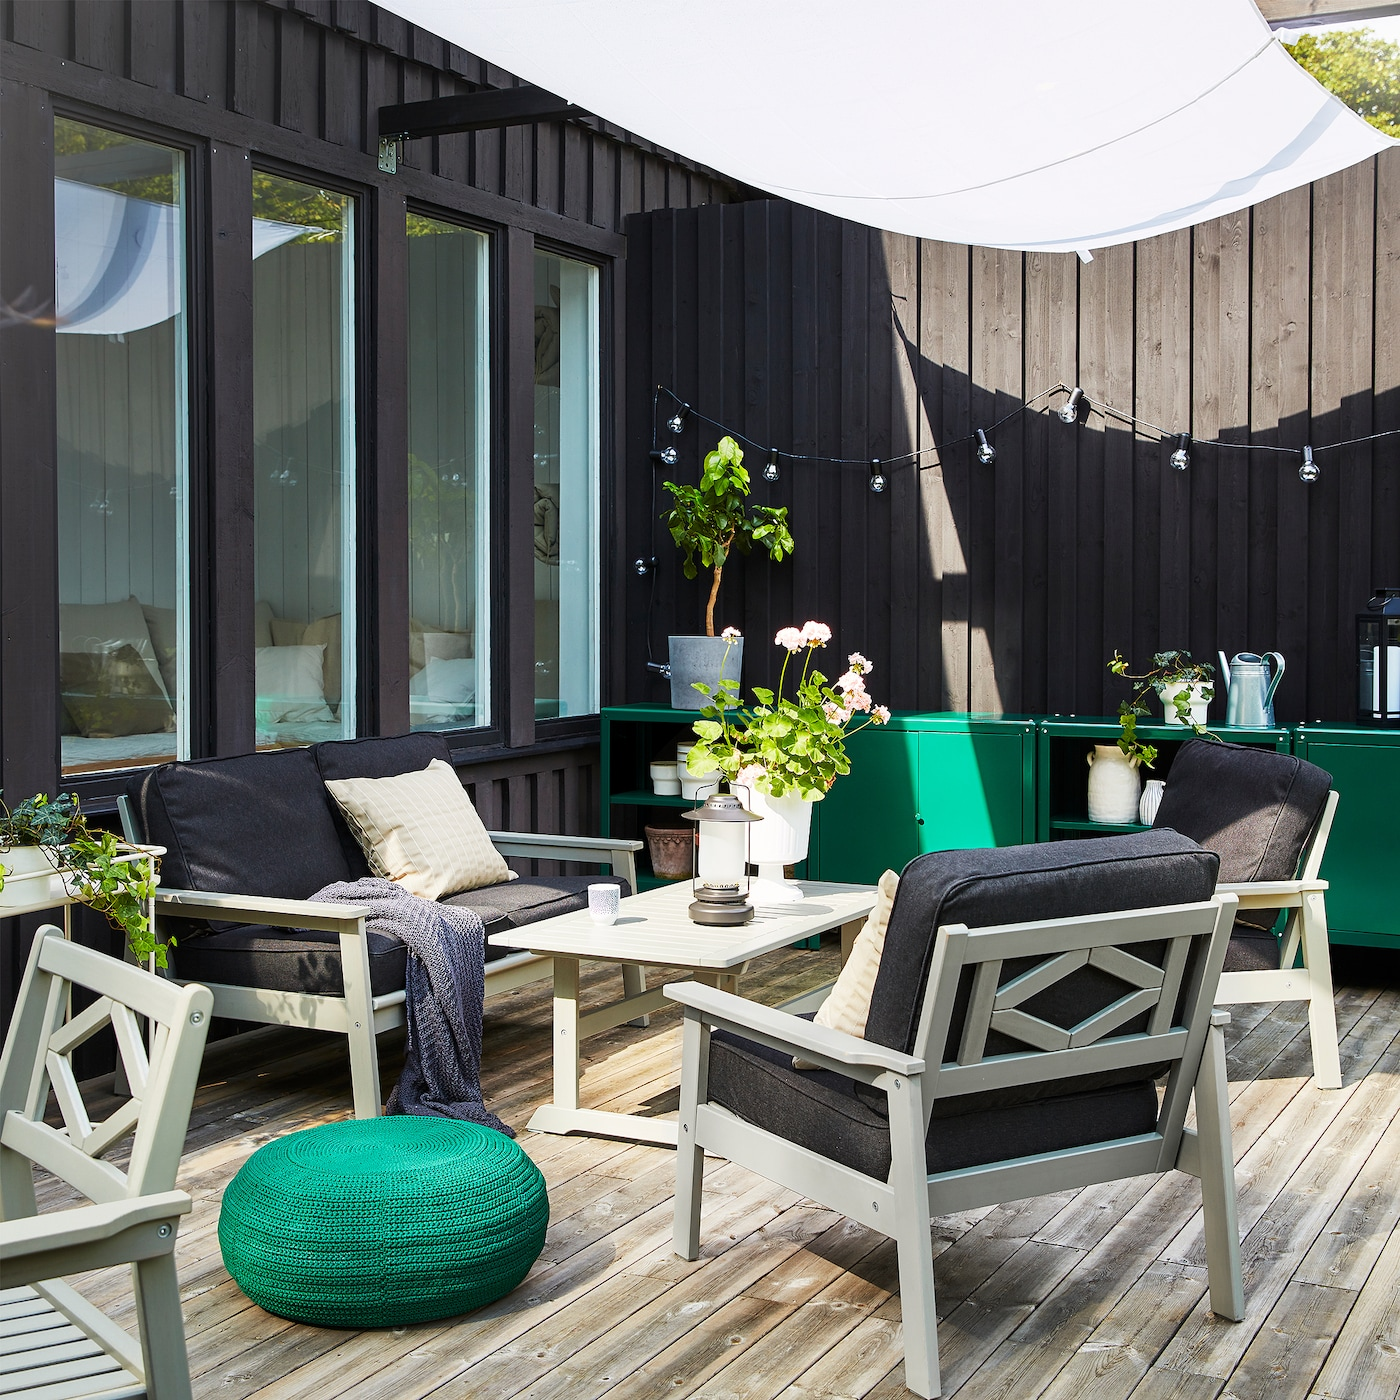 A stylish and spacious outdoor space IKEA